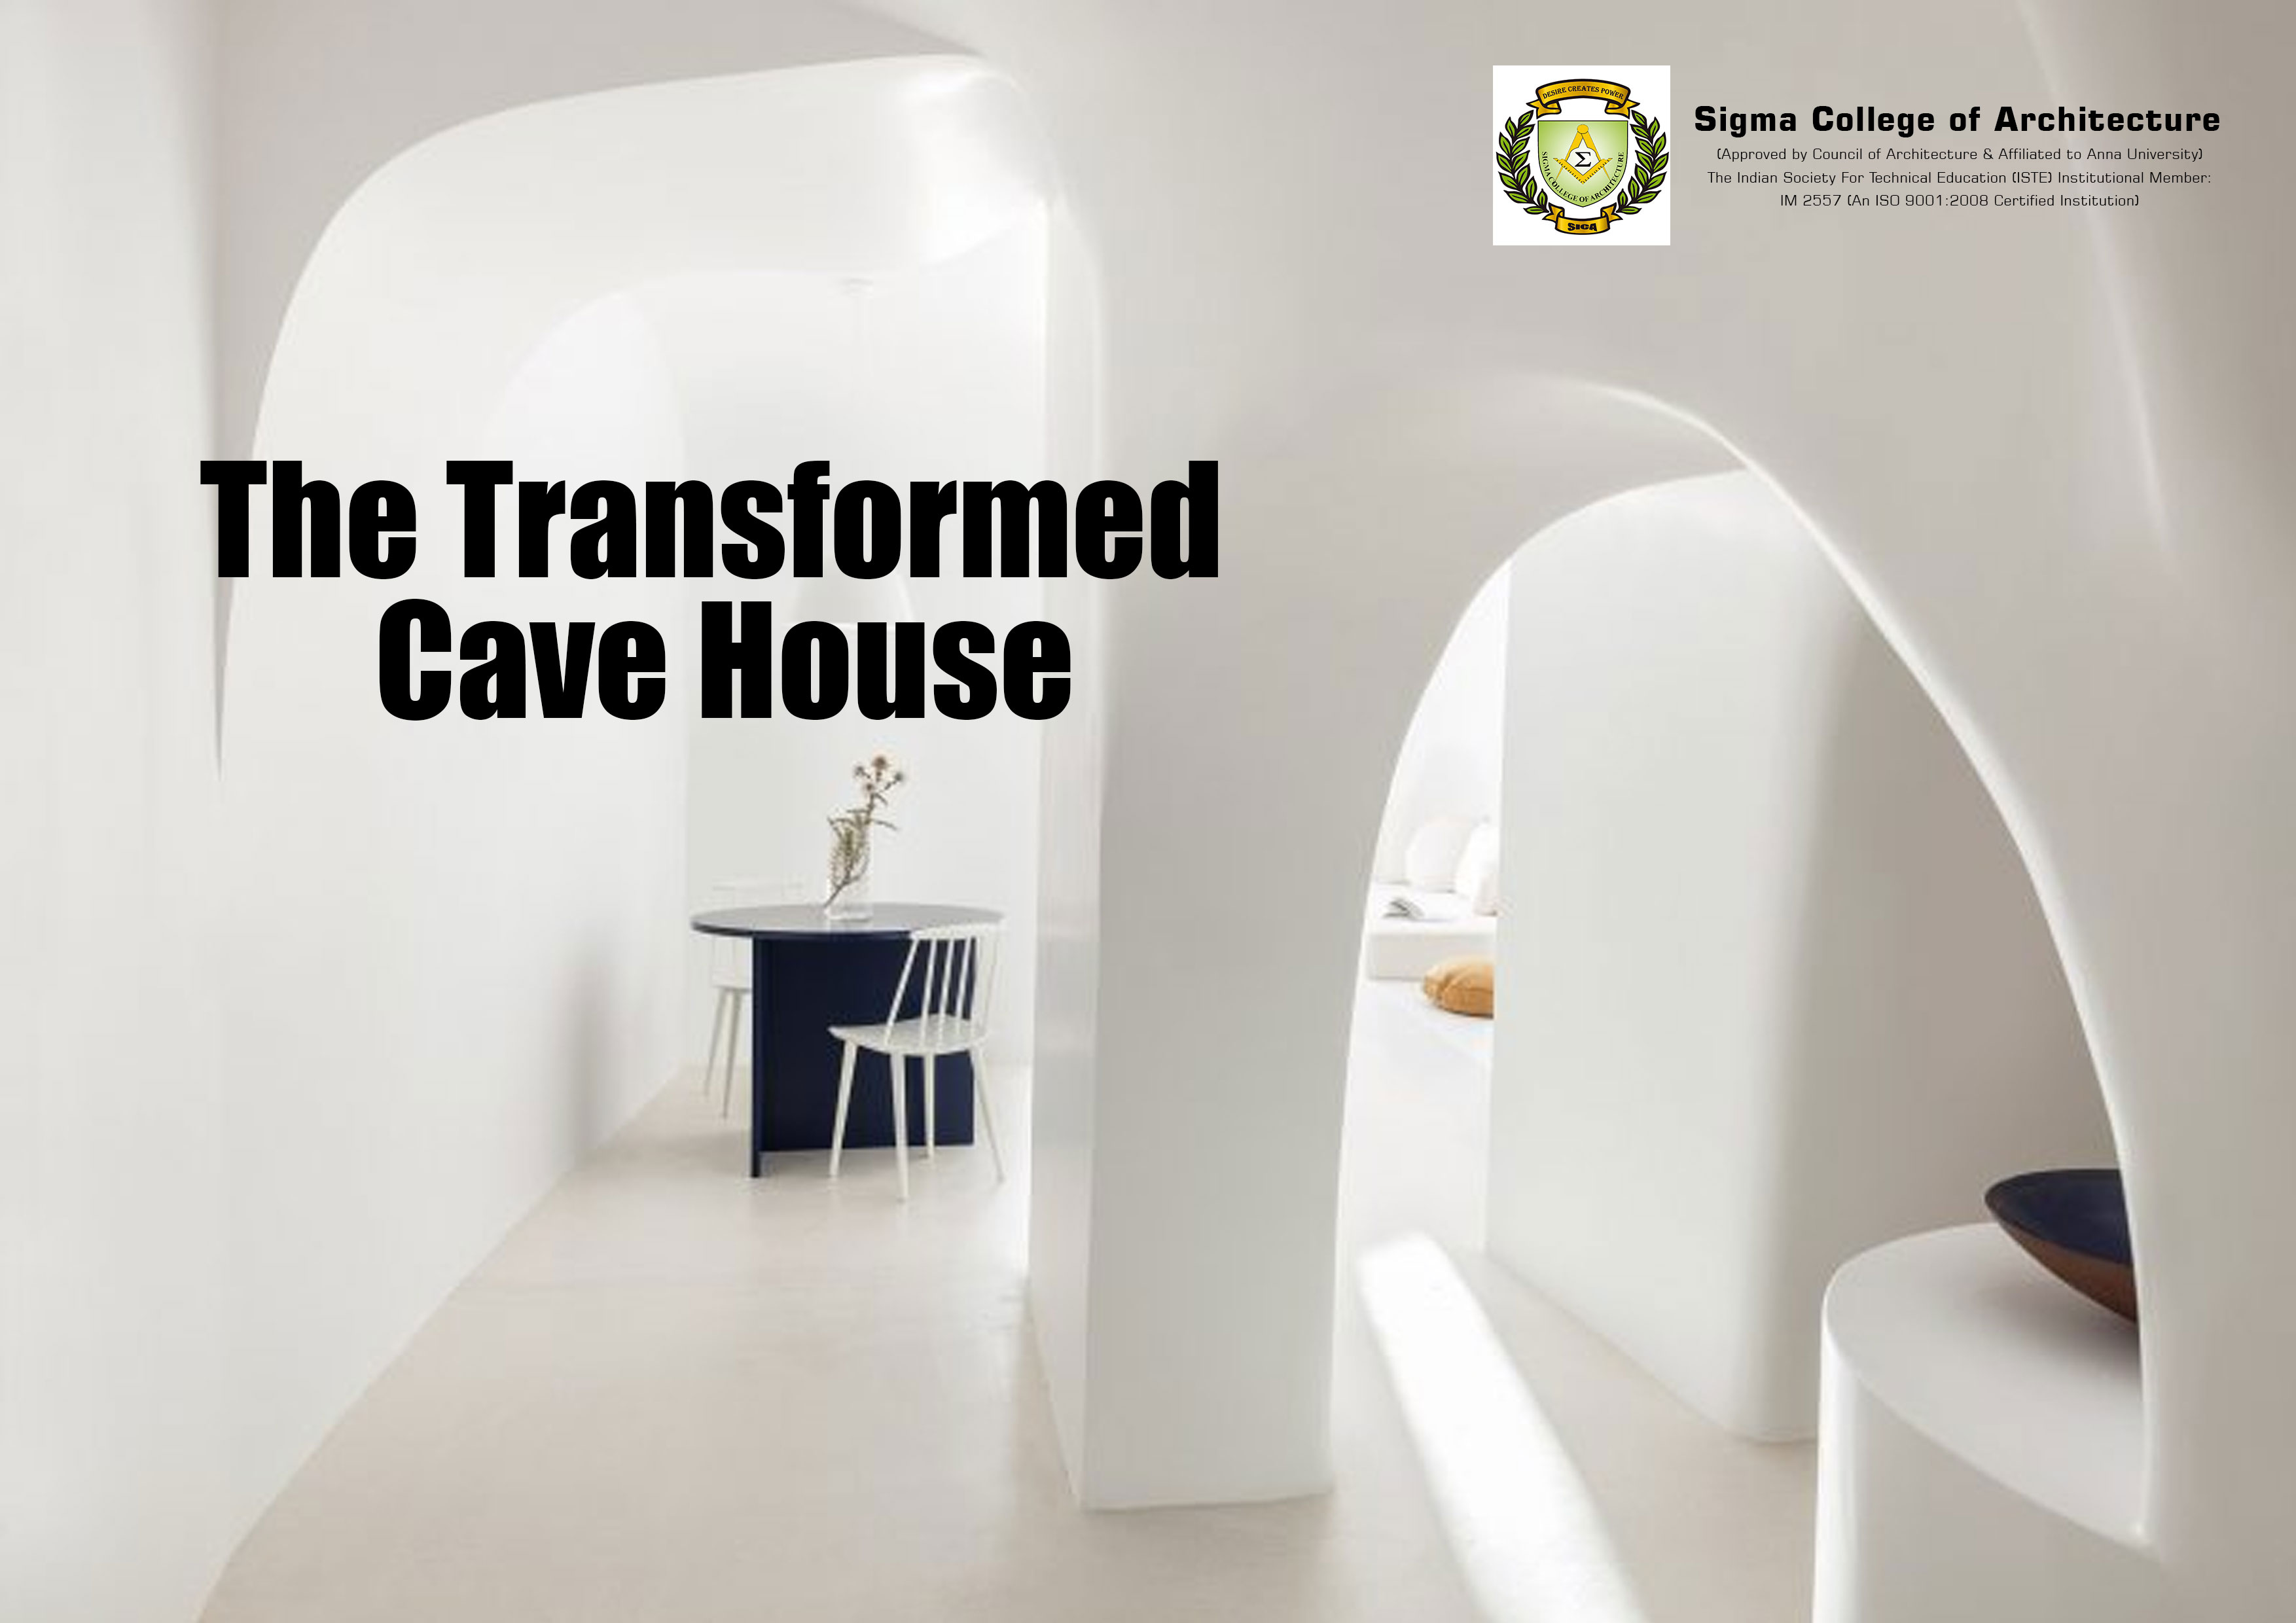 The Transformed Cave House